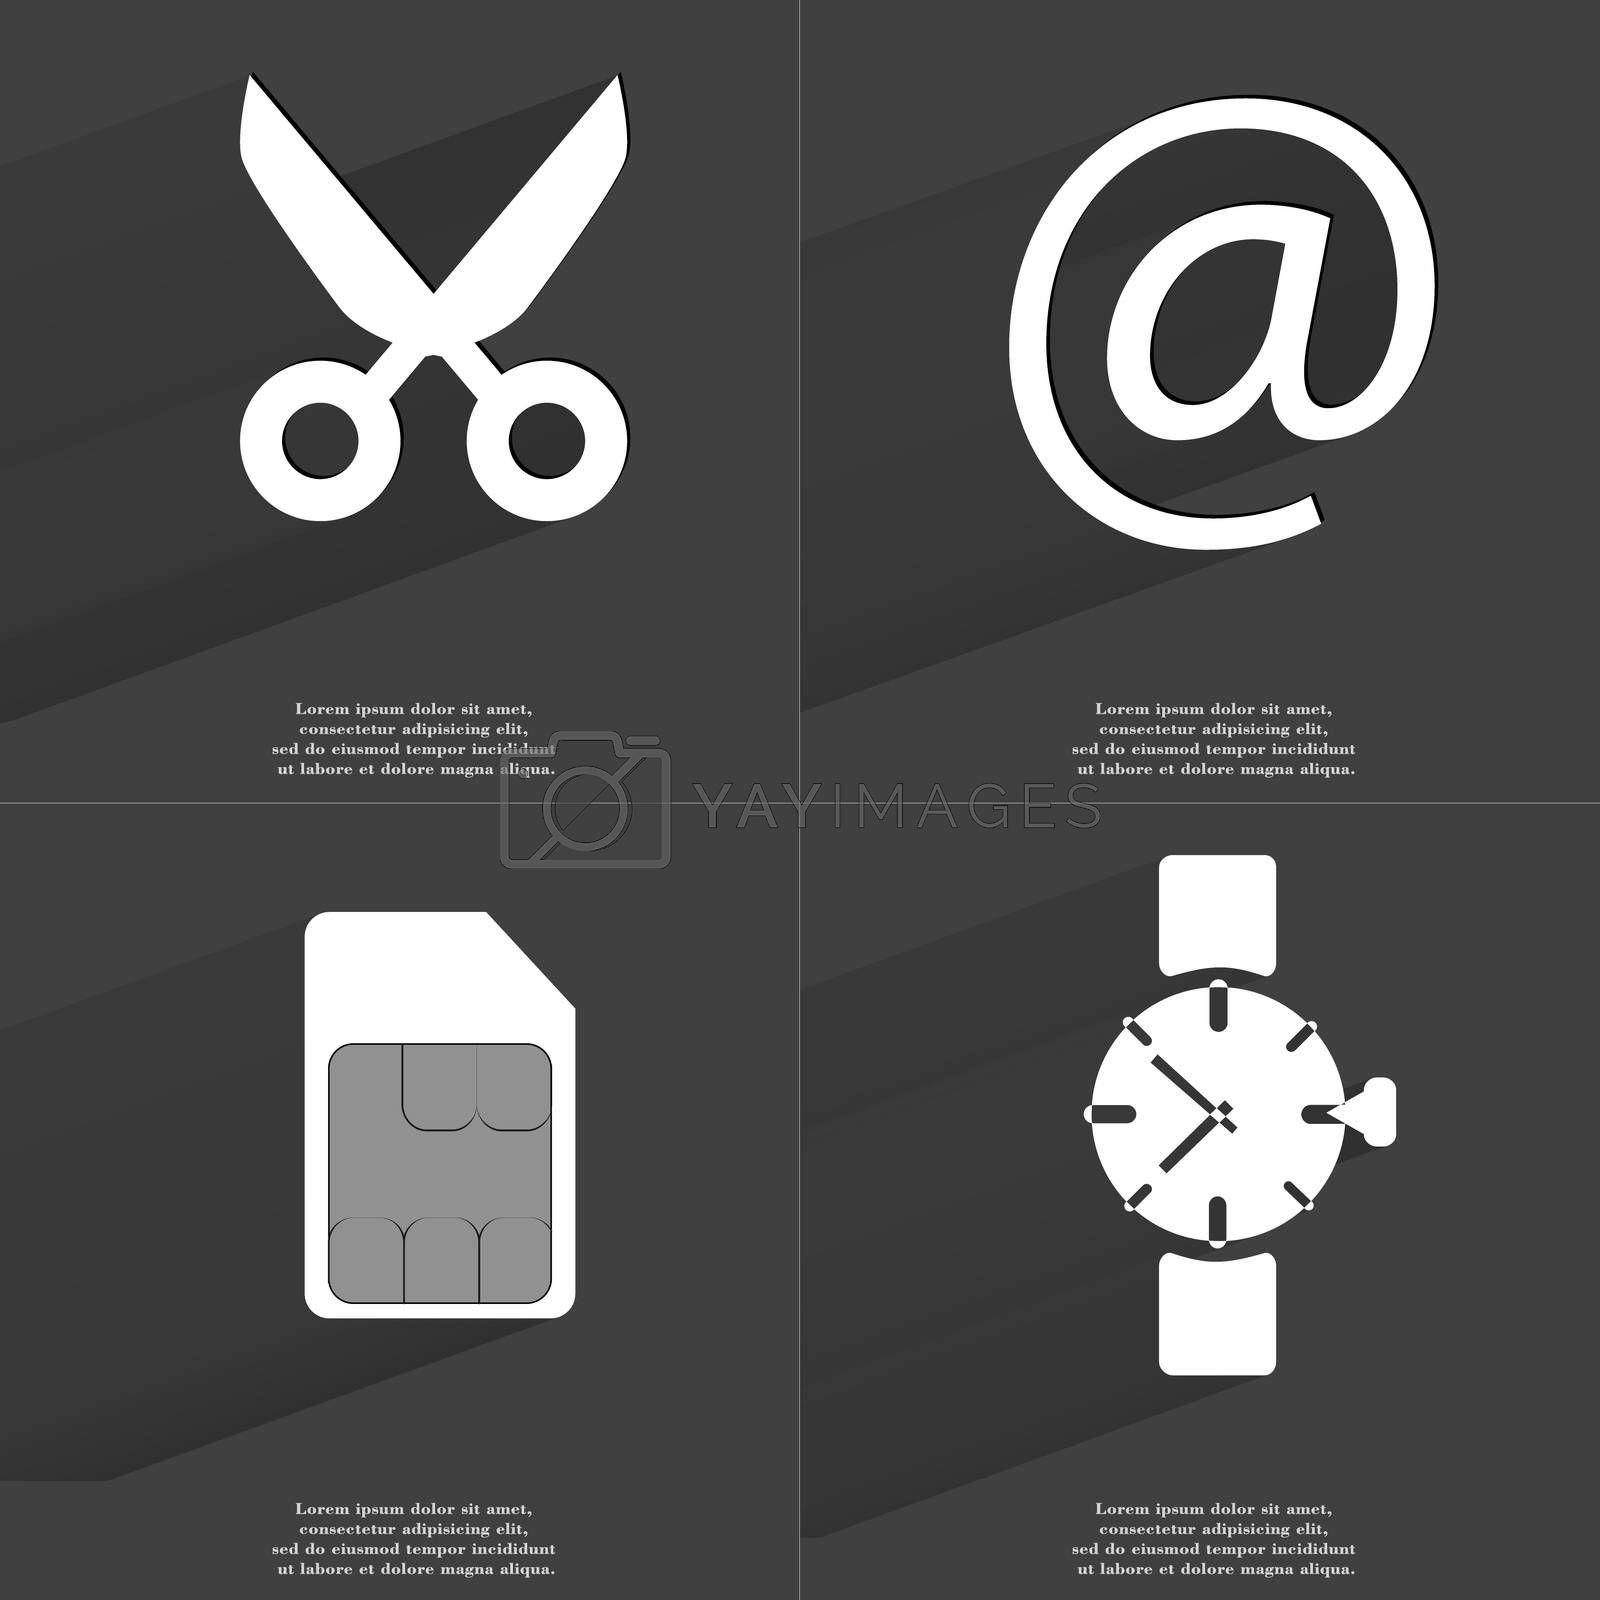 Royalty free image of Scissors, At sign, SIM card, Wrist watch. Symbols with long shadow. Flat design by serhii_lohvyniuk